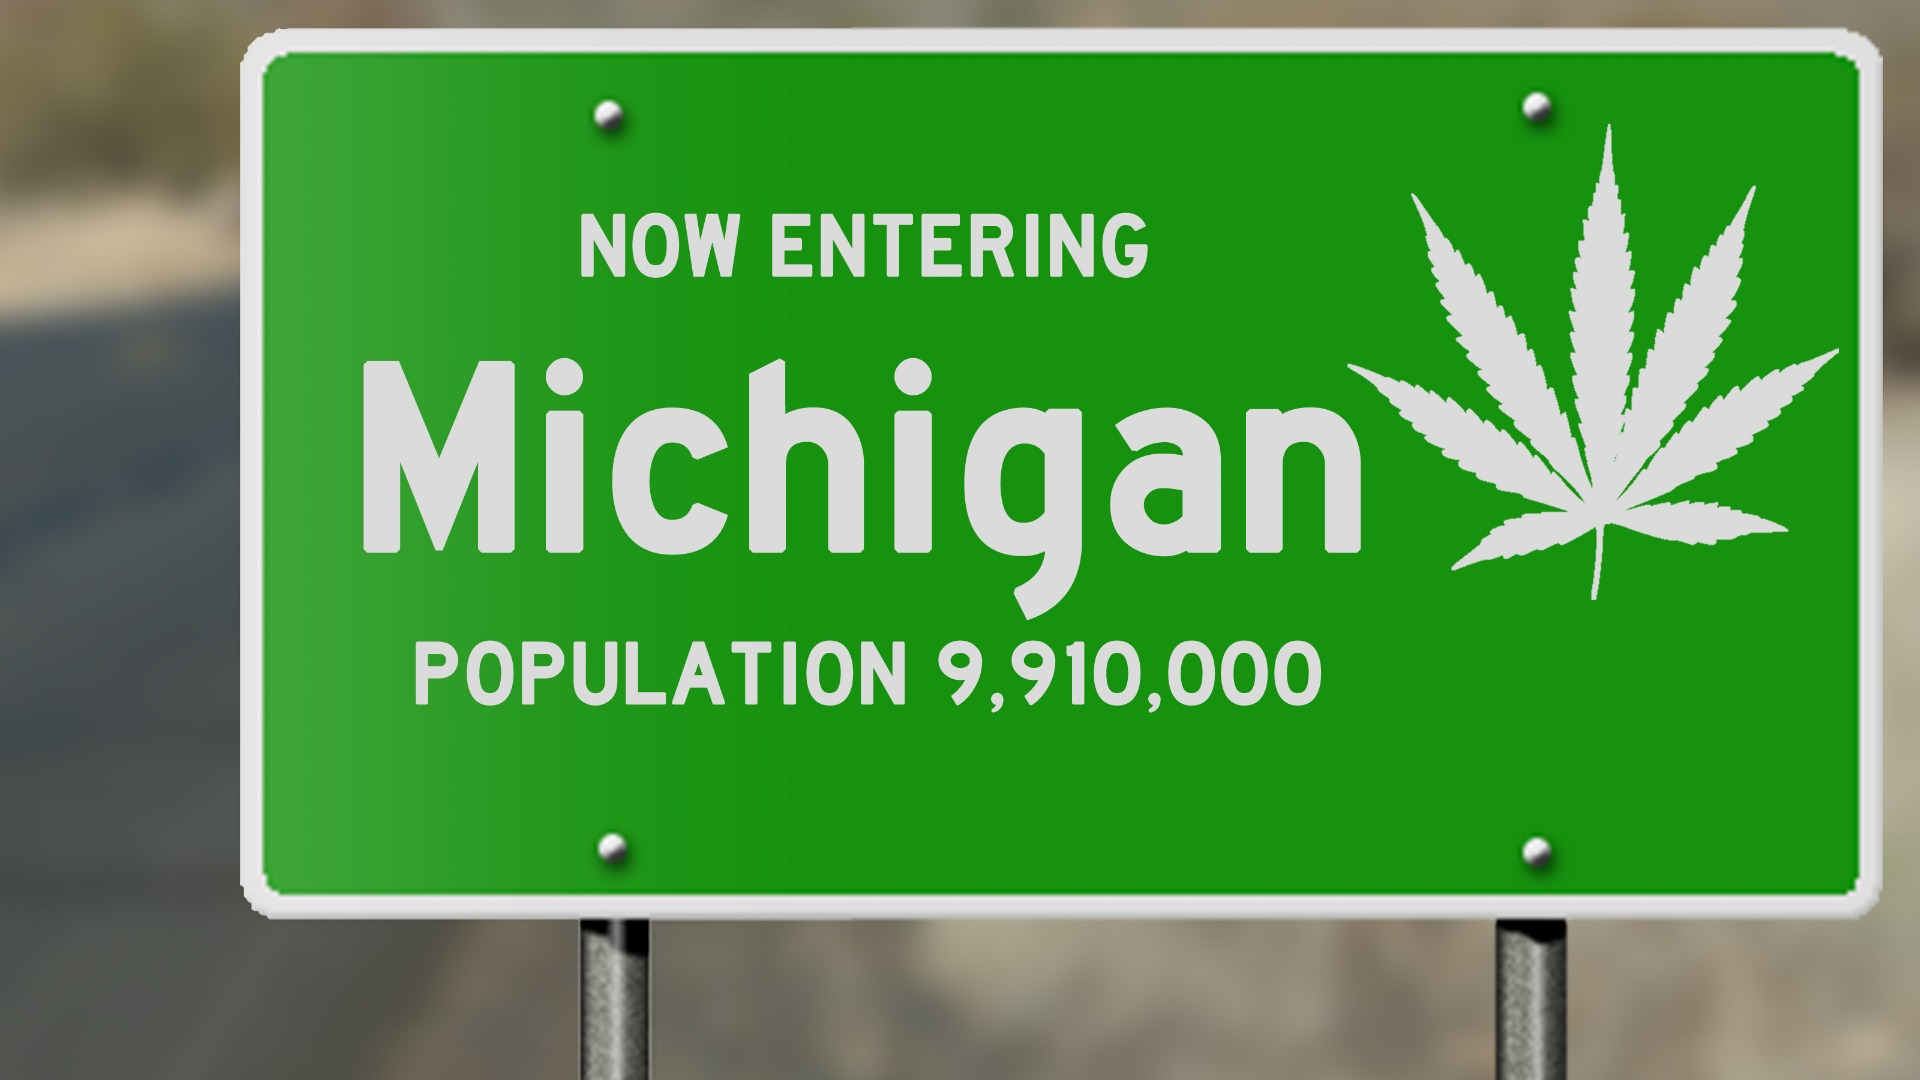 Michigan recreational cannabis will be legal in December 2018